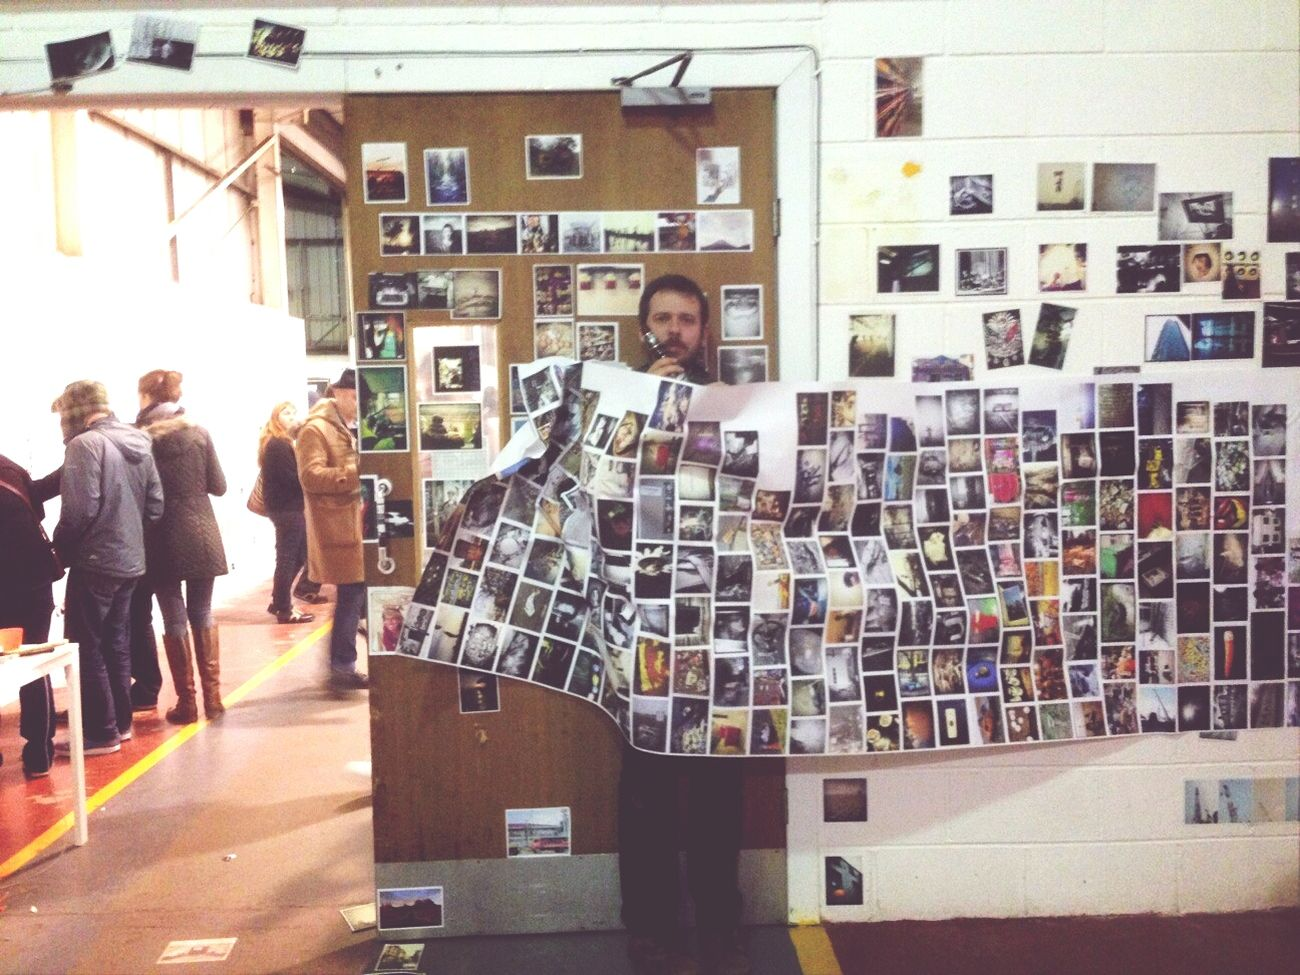 After printing more than 6000 of your photos in 30 days, our friend & EyeEm Ambassador Misho Baranovic celebrated in style at Format Festival in Derby, UK. Want to know if your photo was part of it? Check our blog for the complete list of participants. The Press - Treasure The Press - Work The Press - Trash